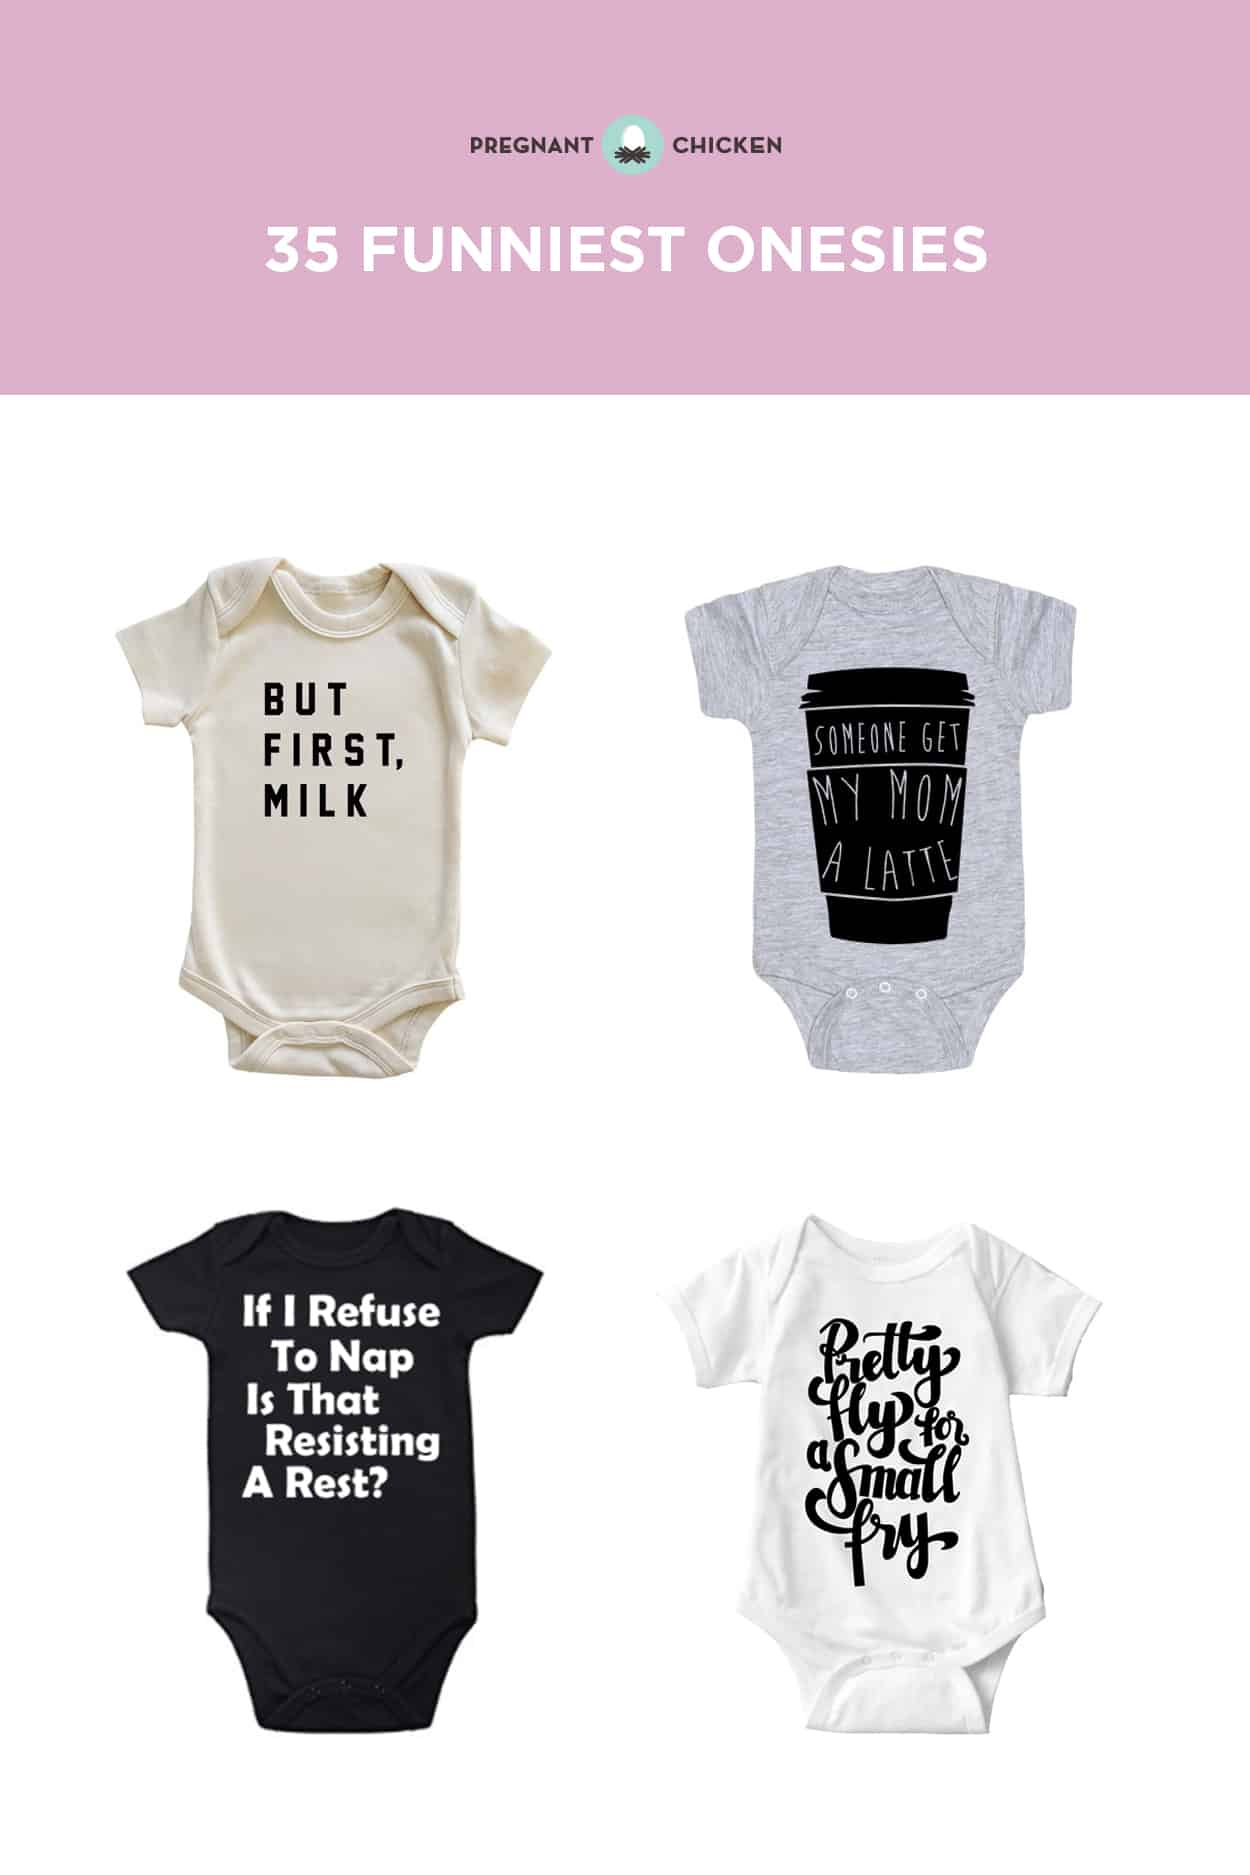 35 Funny Onesies That Tell It Like It Is - Pregnant Chicken - Free Printable Onesies